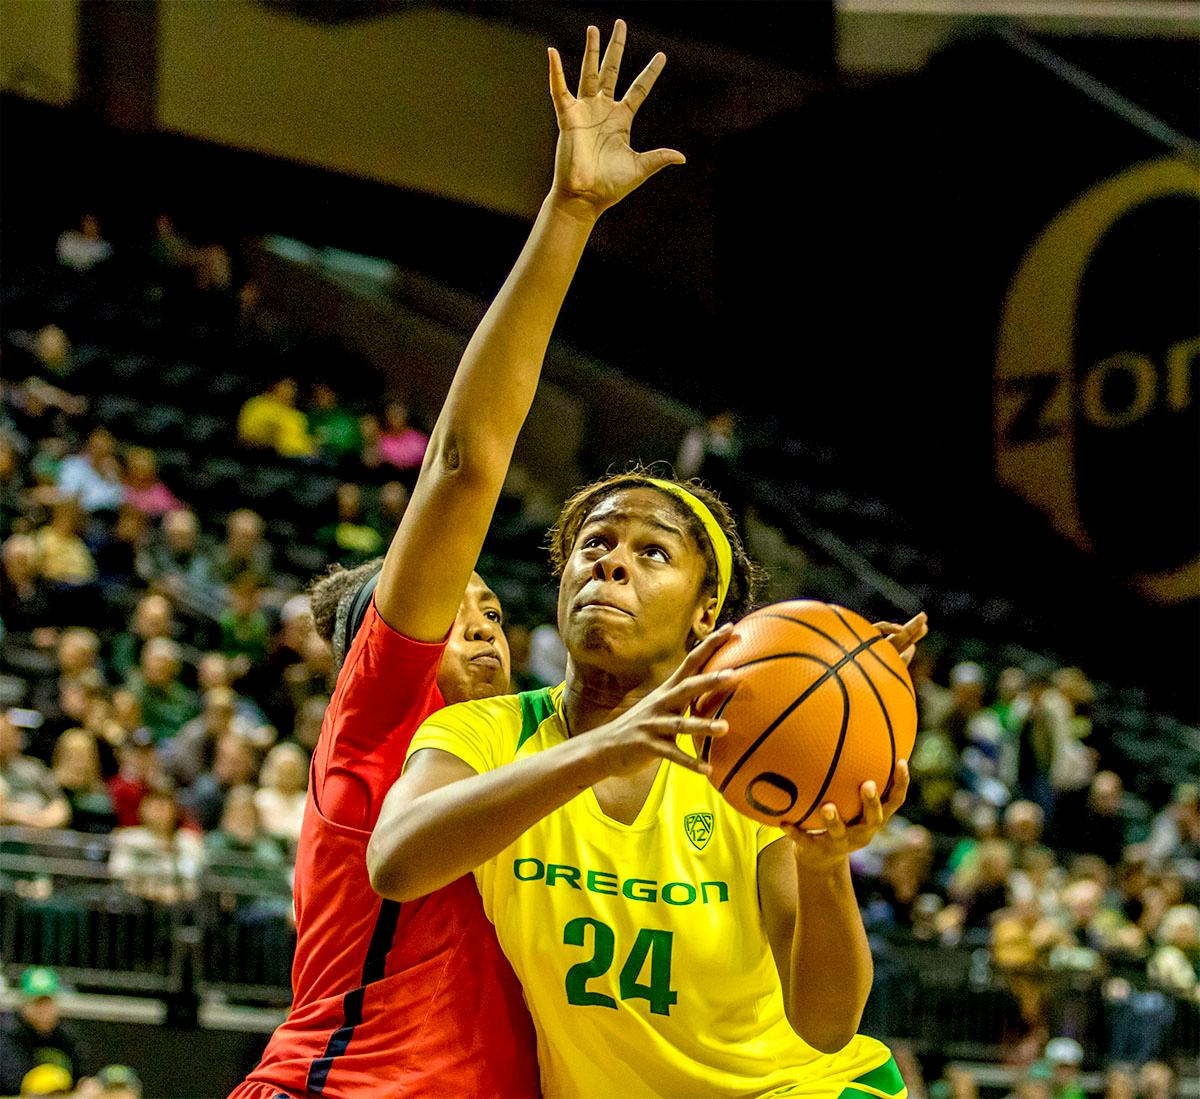 The Duck's Ruthy Hebard (#24) makes a run for the basket. The Duck's Sabrina Ionescu (#20) is introduced at the start of the game against the Ole Miss Rebels. The Oregon Ducks womens basketball team defeated the Ole Miss Rebels 90-46 on Sunday at Matthew Knight Arena. Sabrina Ionescu tied the NCAA record for triple-doubles, finishing the game with 21 points, 14 assists, and 11 rebounds. Ruthy Hebard added 16 points, Satou Sabally added 12, and both Lexi Bando and Maite Cazorla scored 10 each. The Ducks will next face off against Texas A&M on Thursday Dec. 21 and Hawaii on Friday Dec. 22 in Las Vegas for Duel in the Desert before the start of Pac-12 games. Photo by August Frank, Oregon News Lab